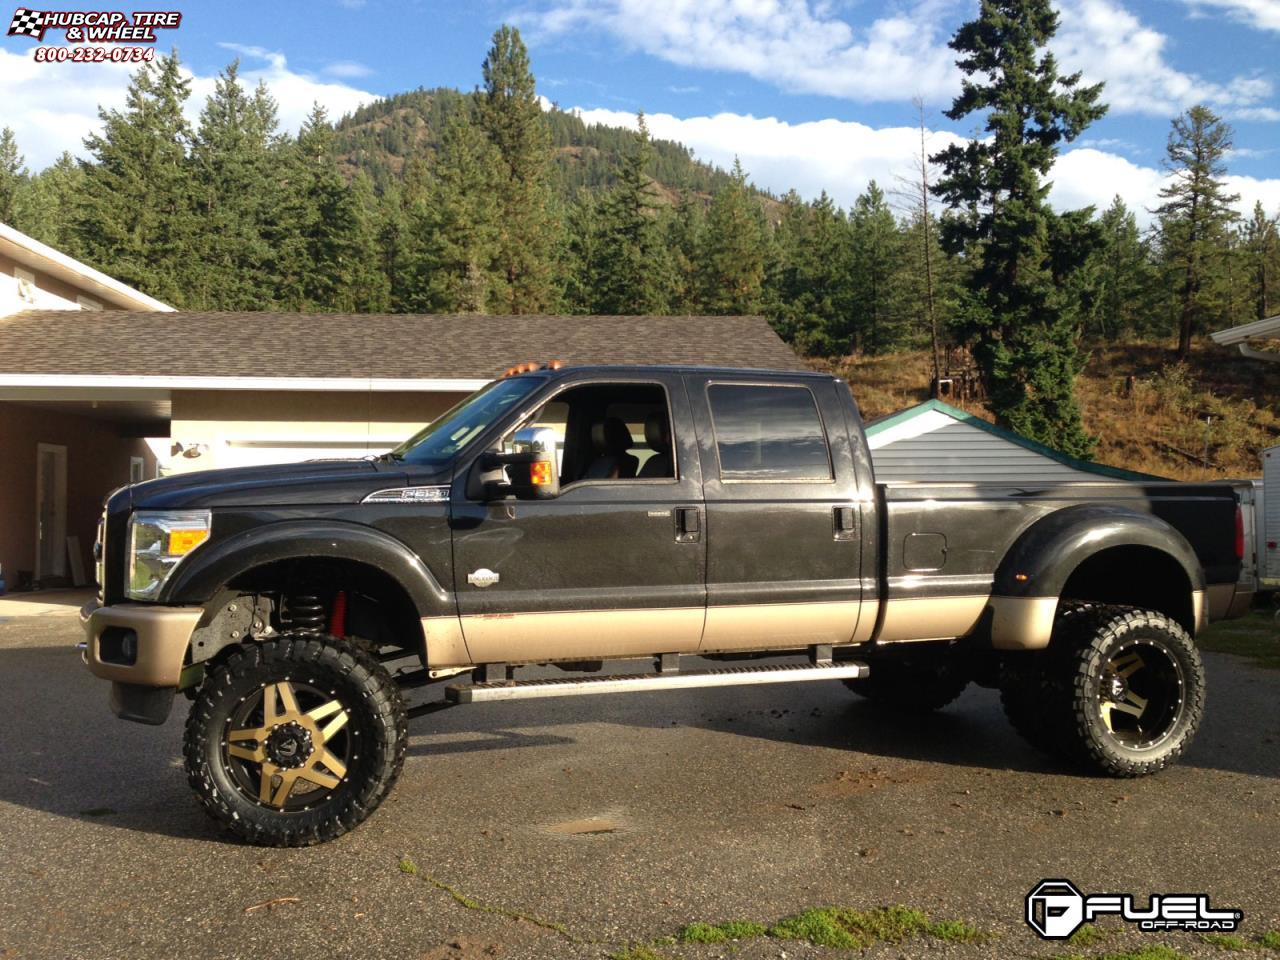 Used Ford F350 Dually Wheels >> Ford F 350 Super Duty Fuel Full Blown Dually Front D254